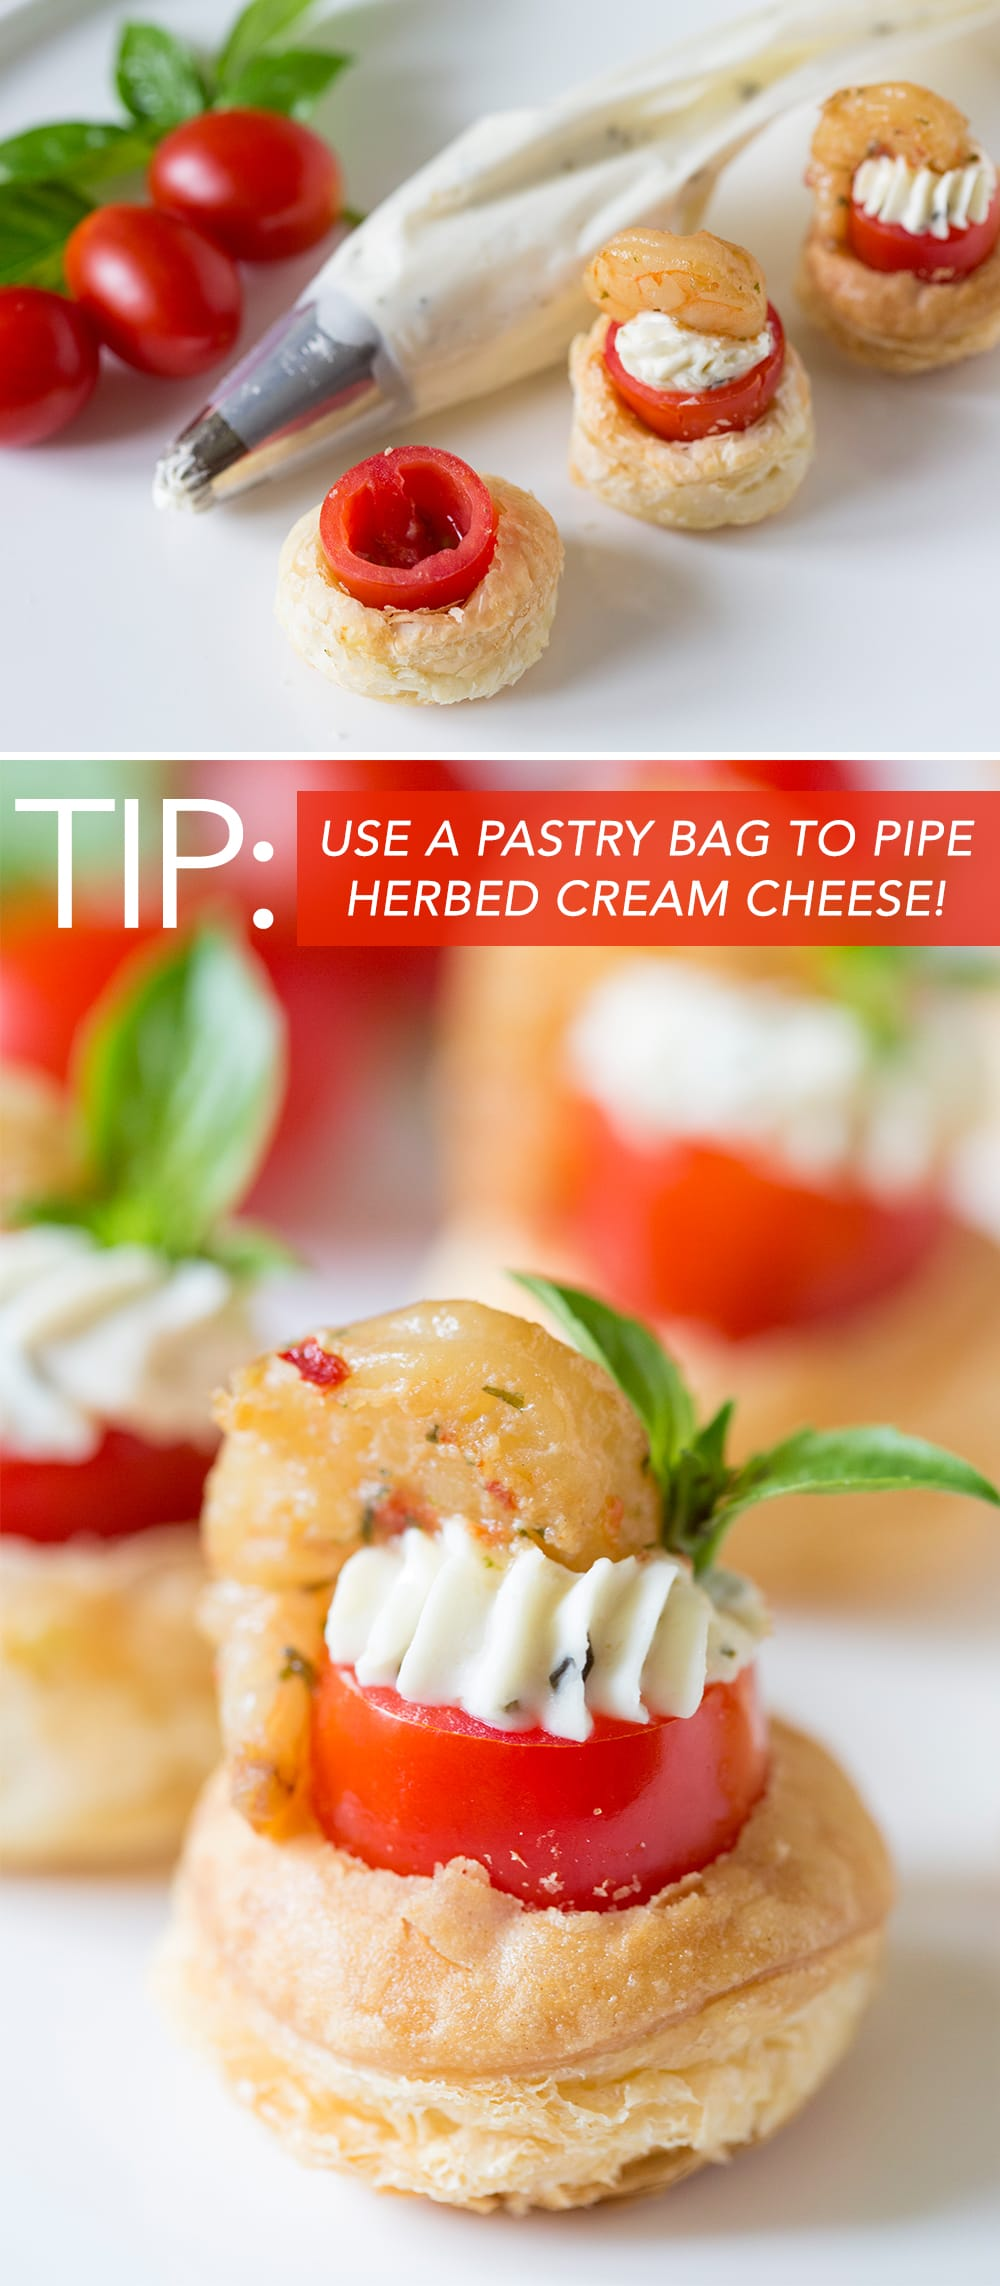 Party Tip: Use a pastry bag to pipe creamed cheese into pastry tartlet!